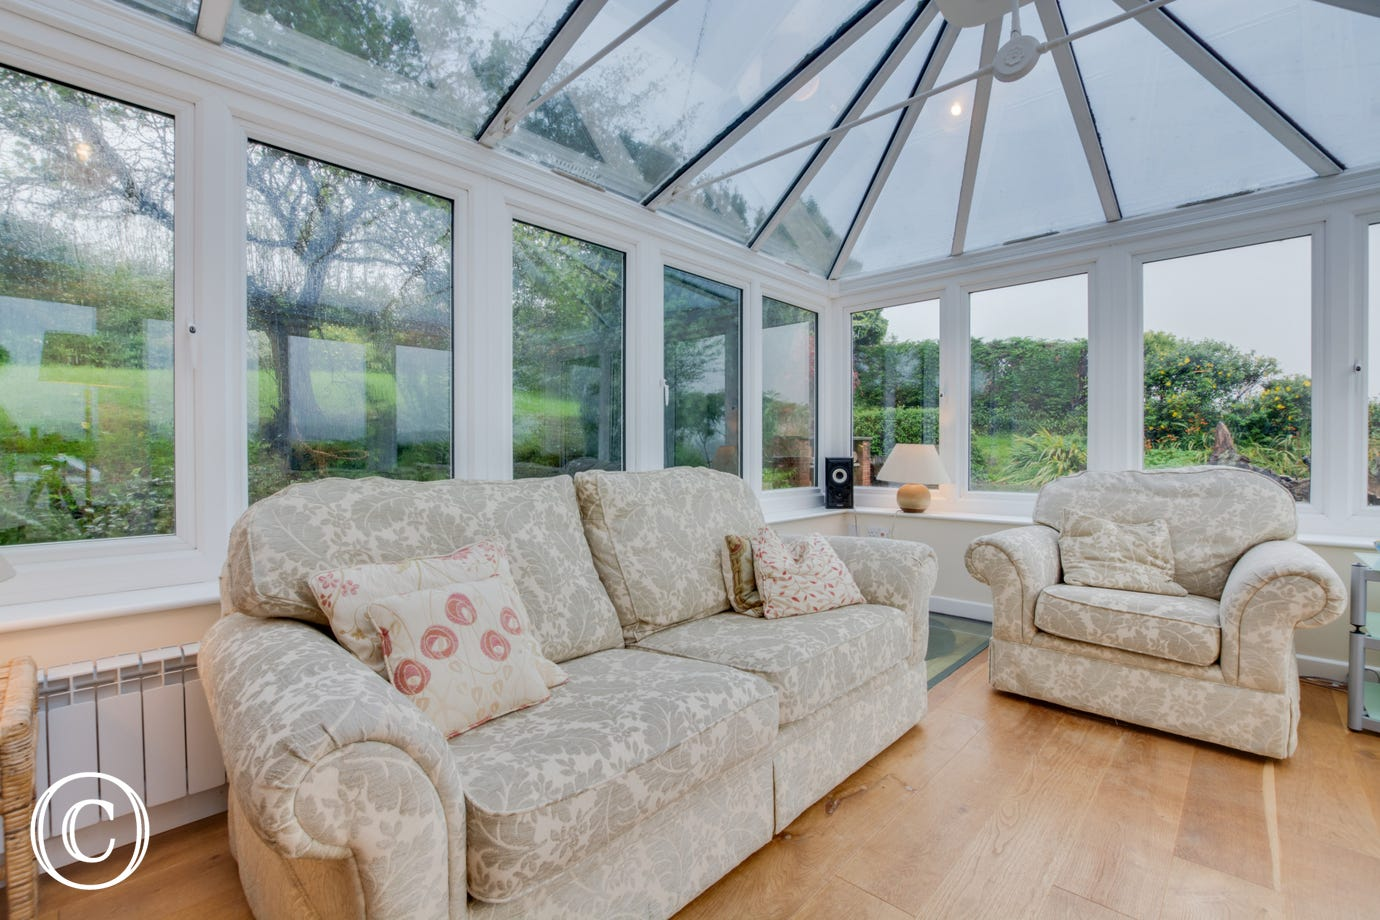 Modern conservatory to relax and enjoy the views of the garden.